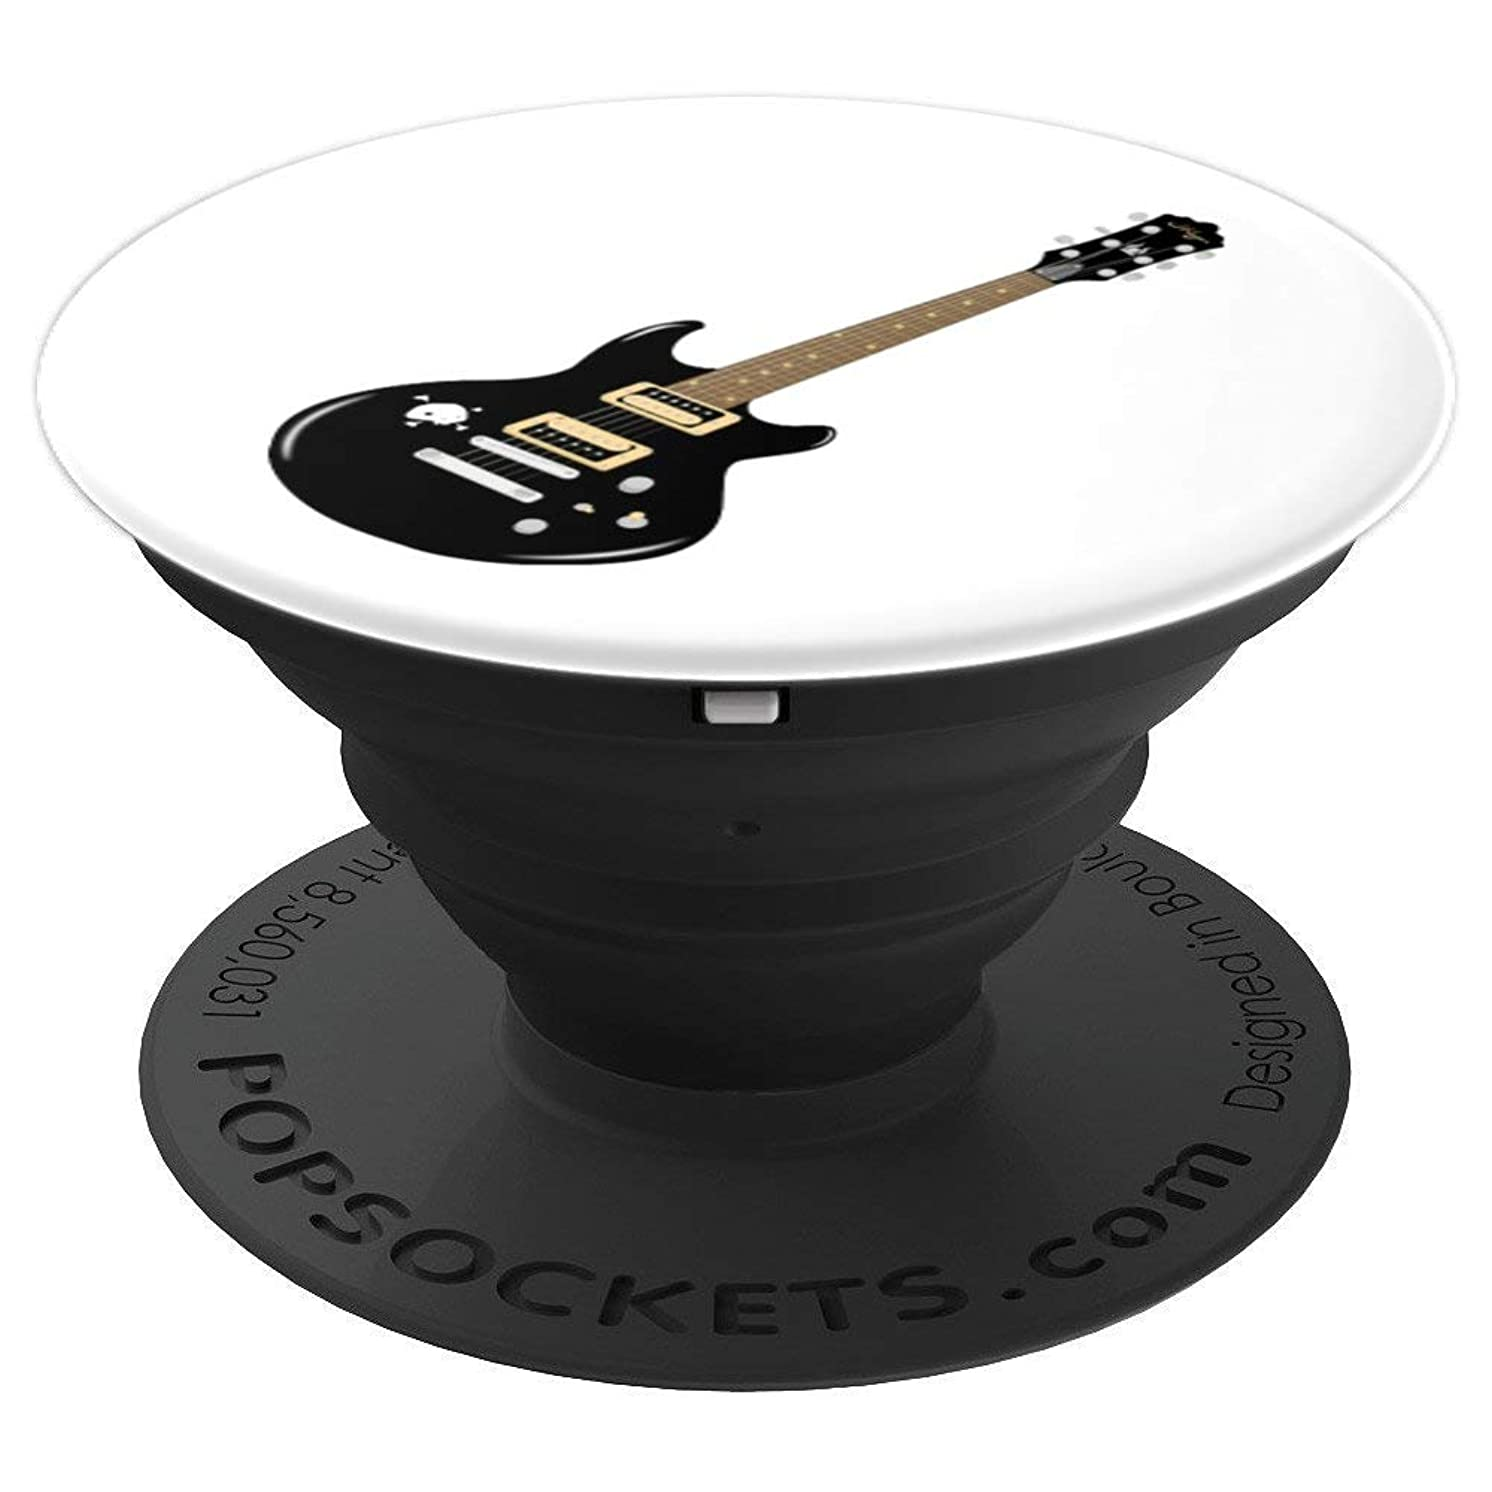 Black Electric Guitar Design - PopSockets Grip and Stand for Phones and Tablets